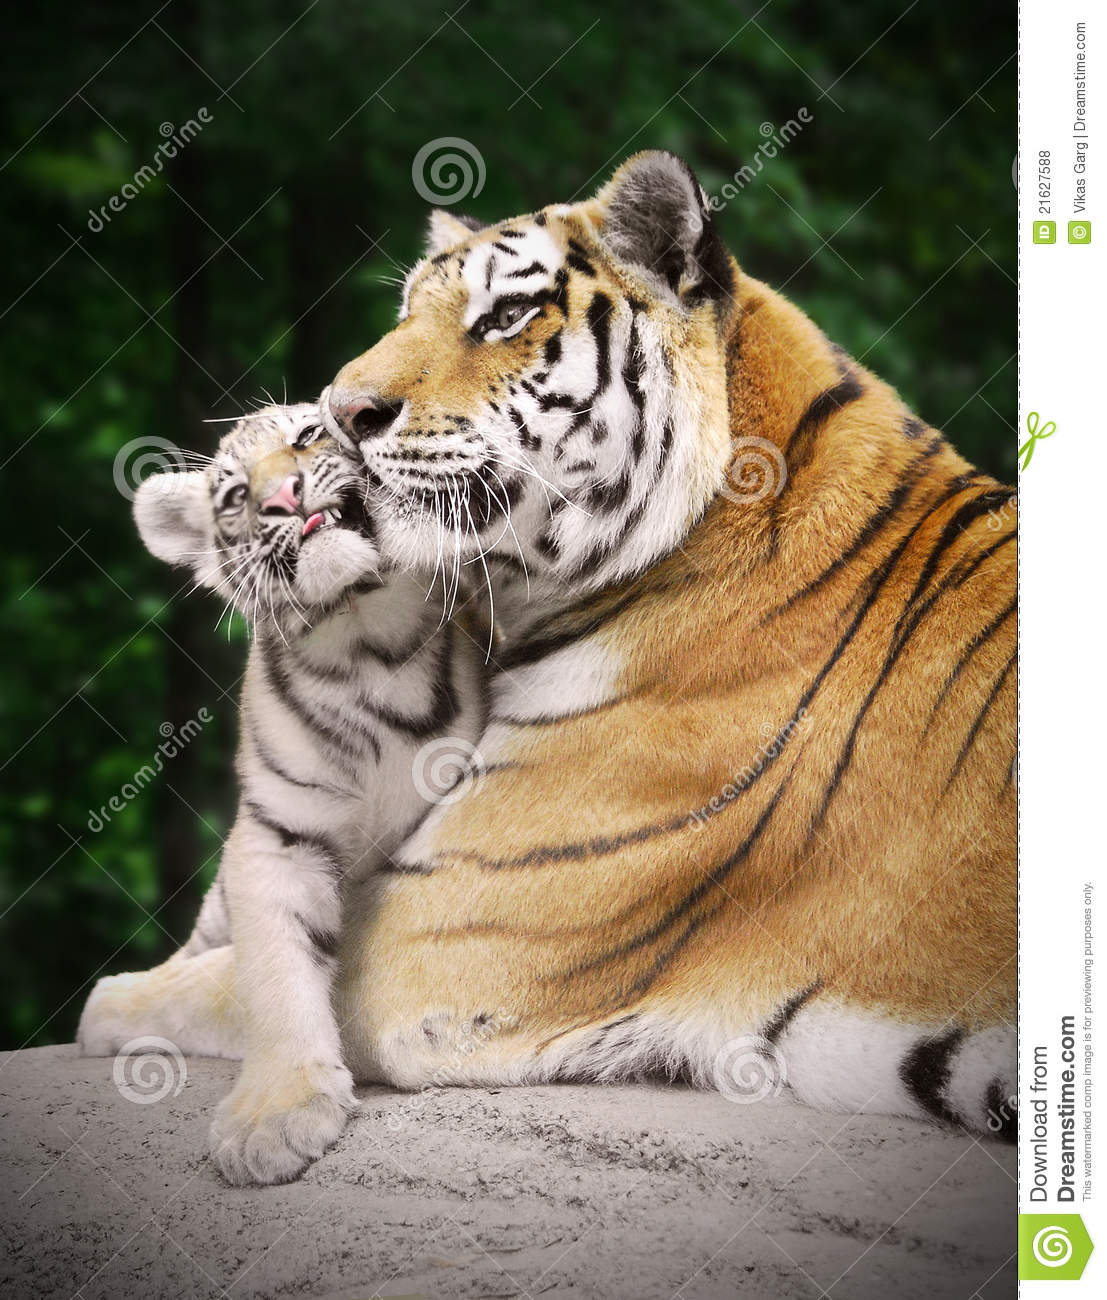 Tiger with a cub